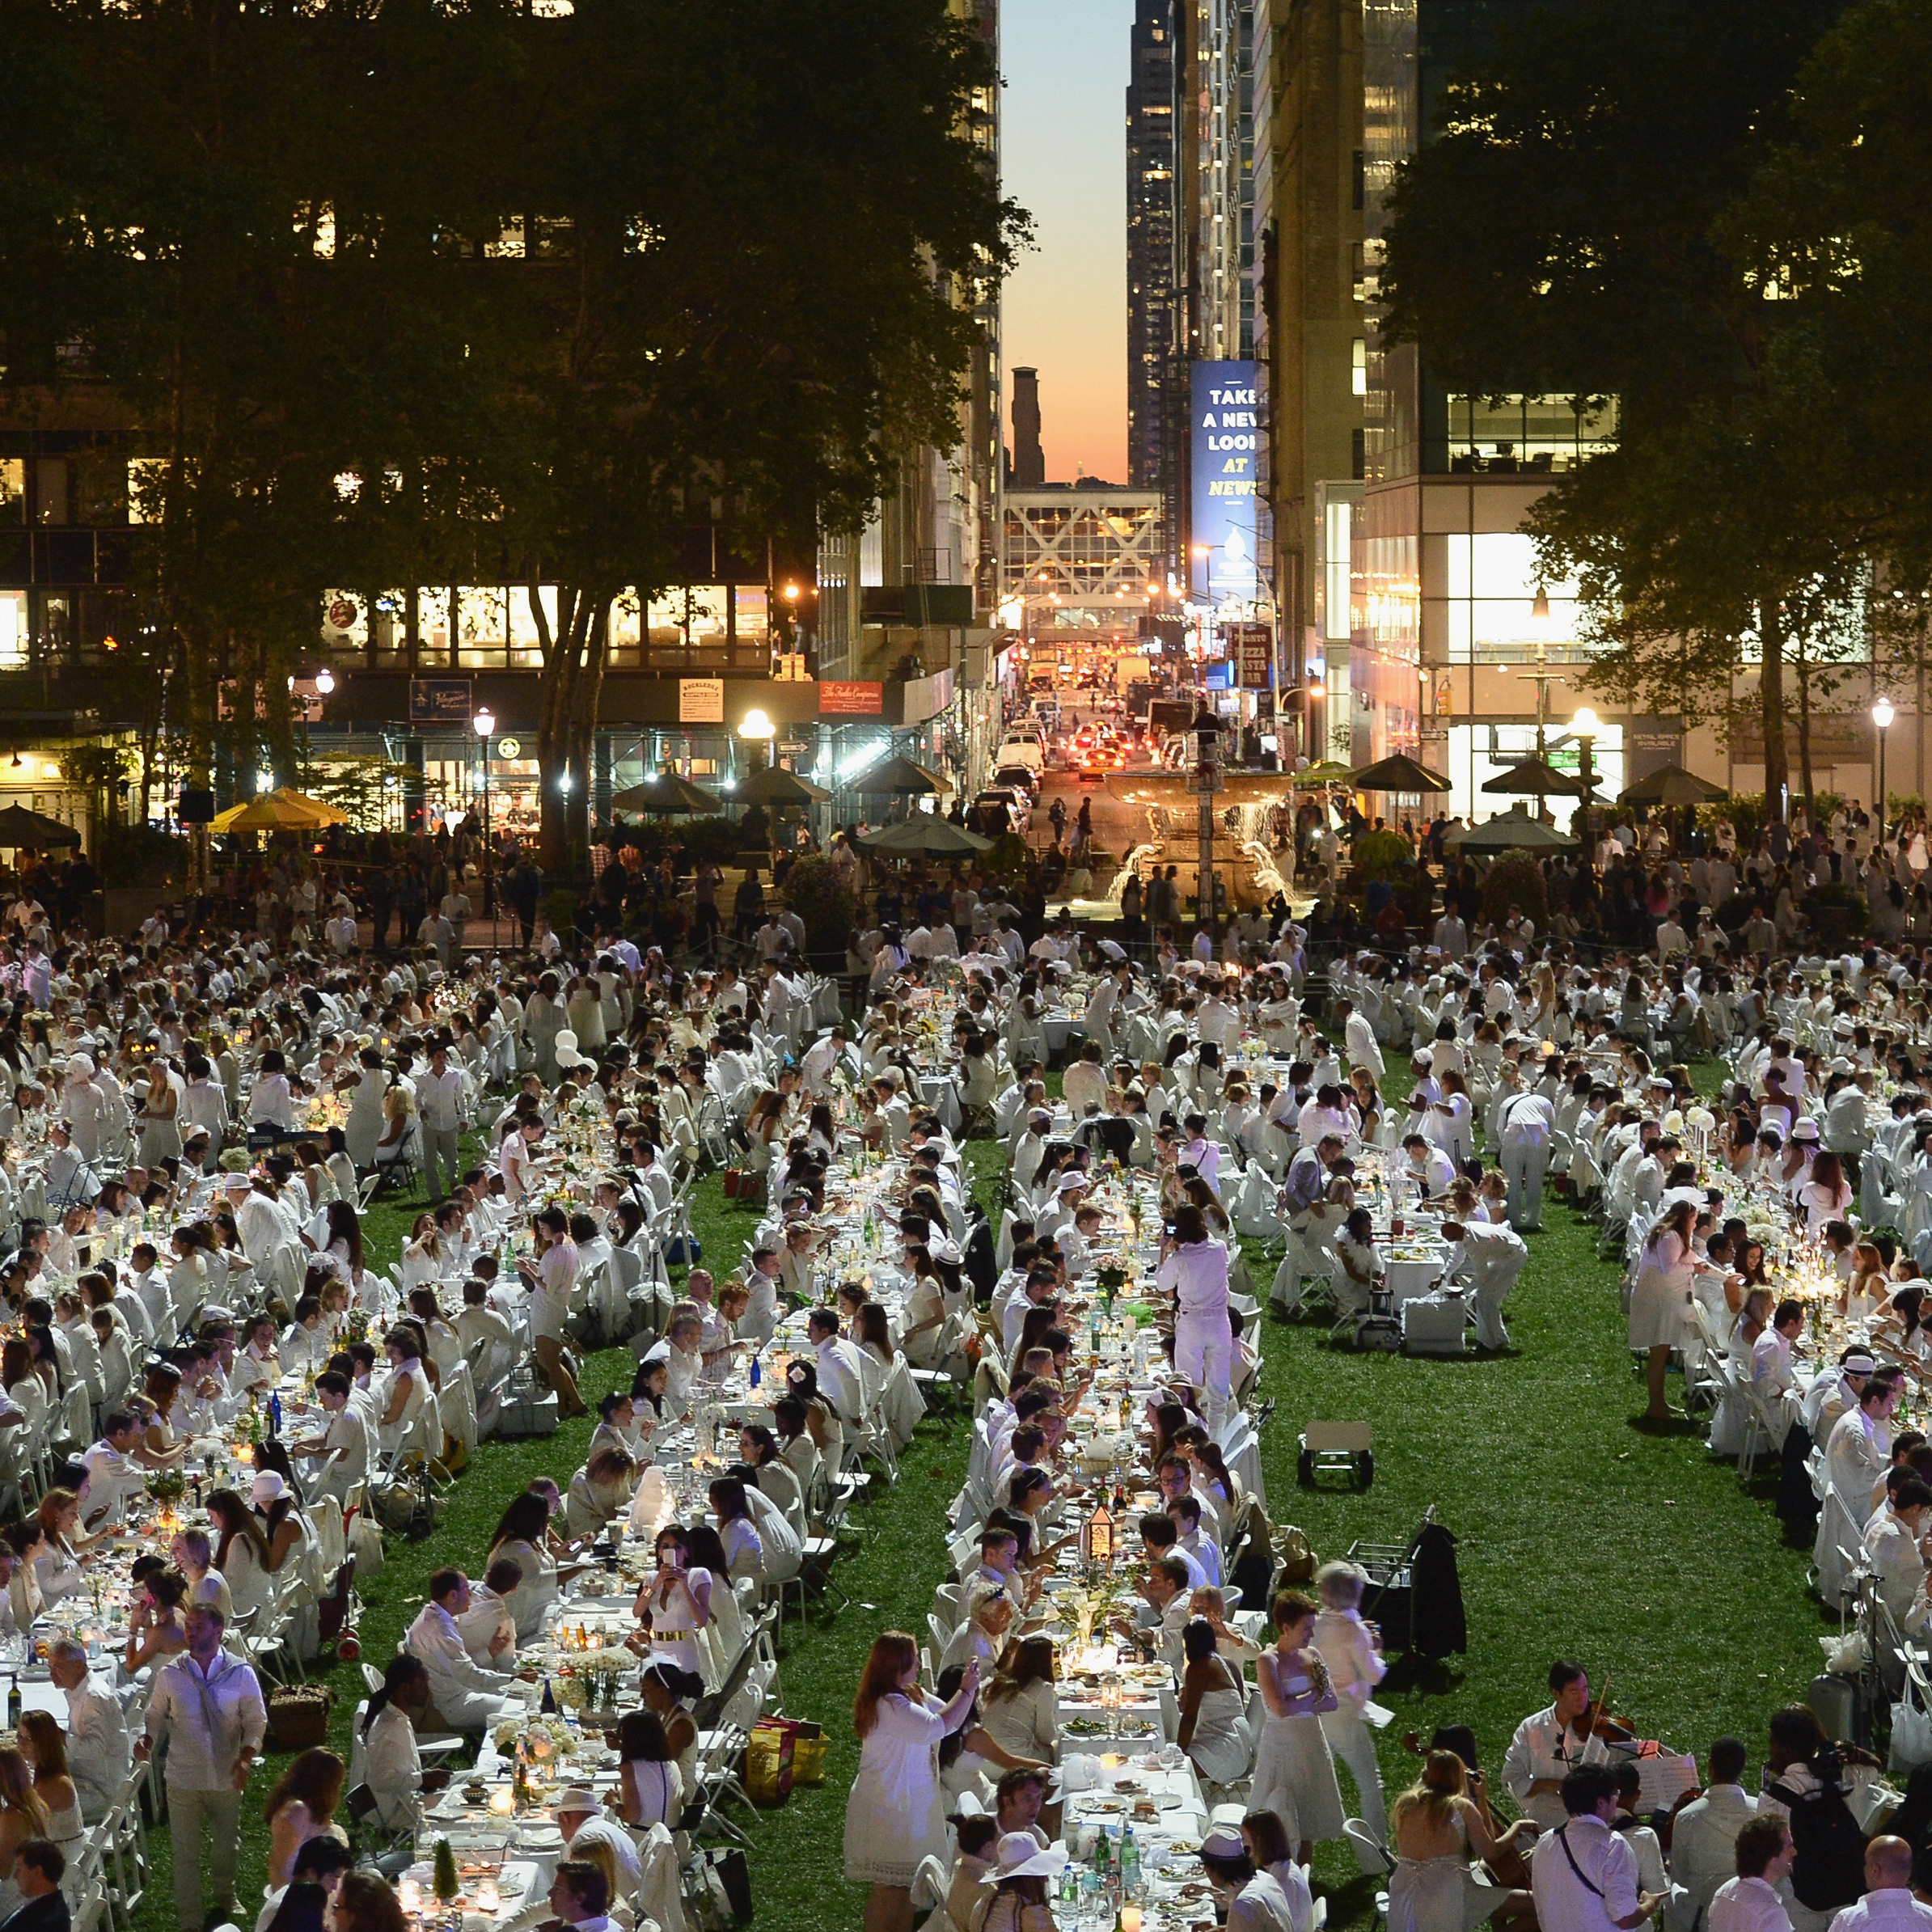 Thousands gathered for the 2013 Diner en Blanc in New York City this week. This year marks the 25th anniversary of the pop-up dinner event, which began in Paris.